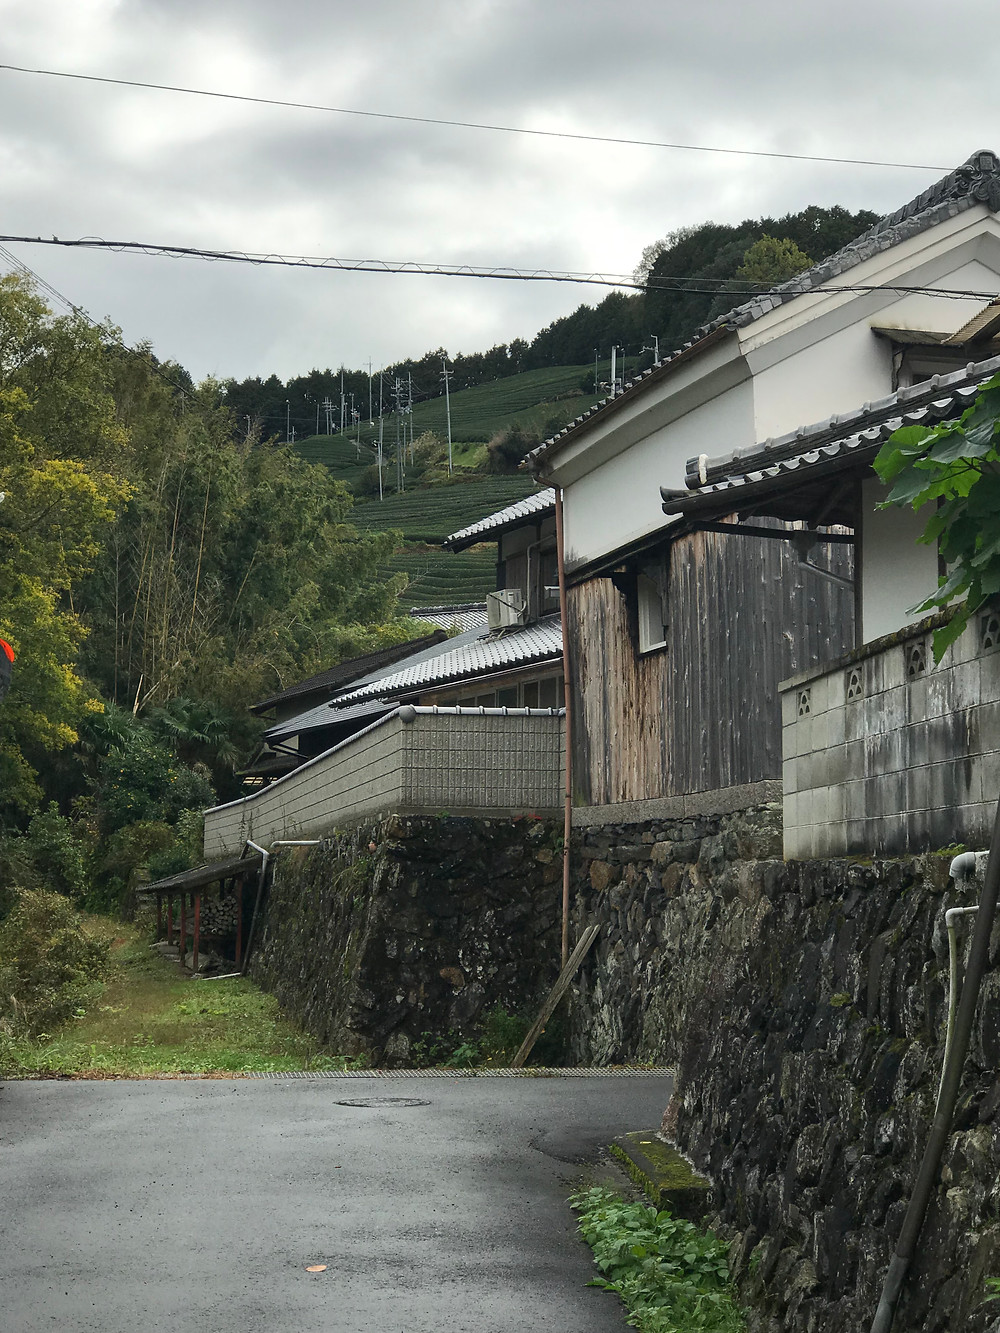 Tea town with Japanese style houses and tea fields